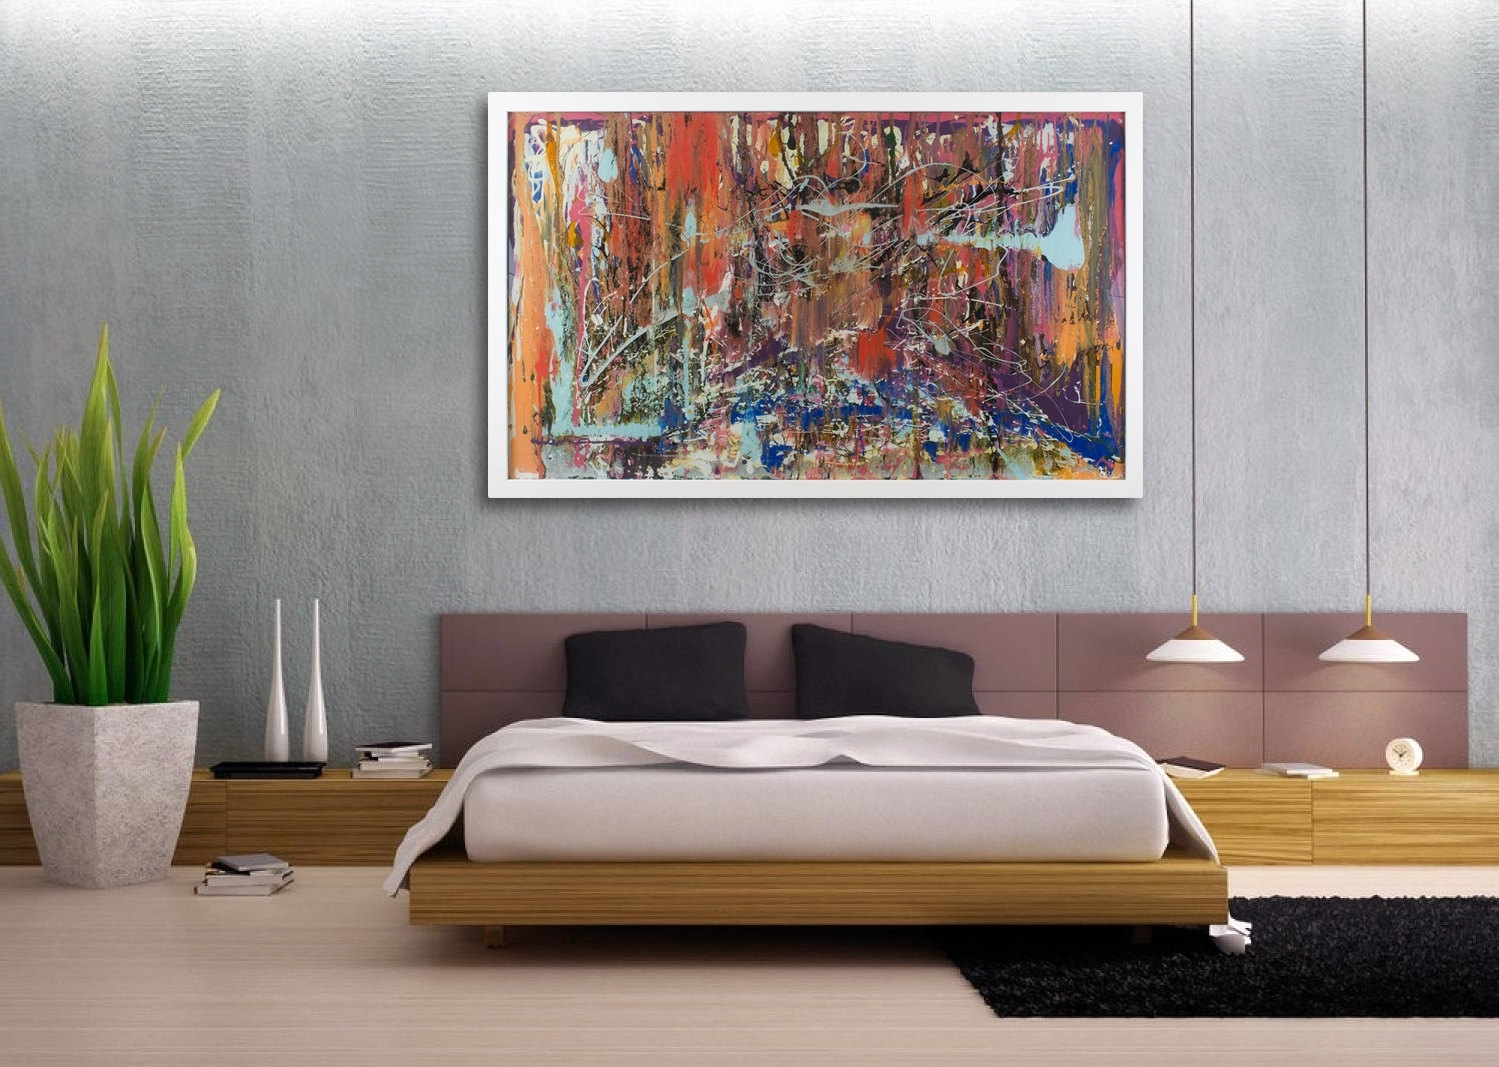 Innovative Way Modern Wall Decor Room — Joanne Russo Homesjoanne Within Newest Large Framed Abstract Wall Art (View 5 of 20)